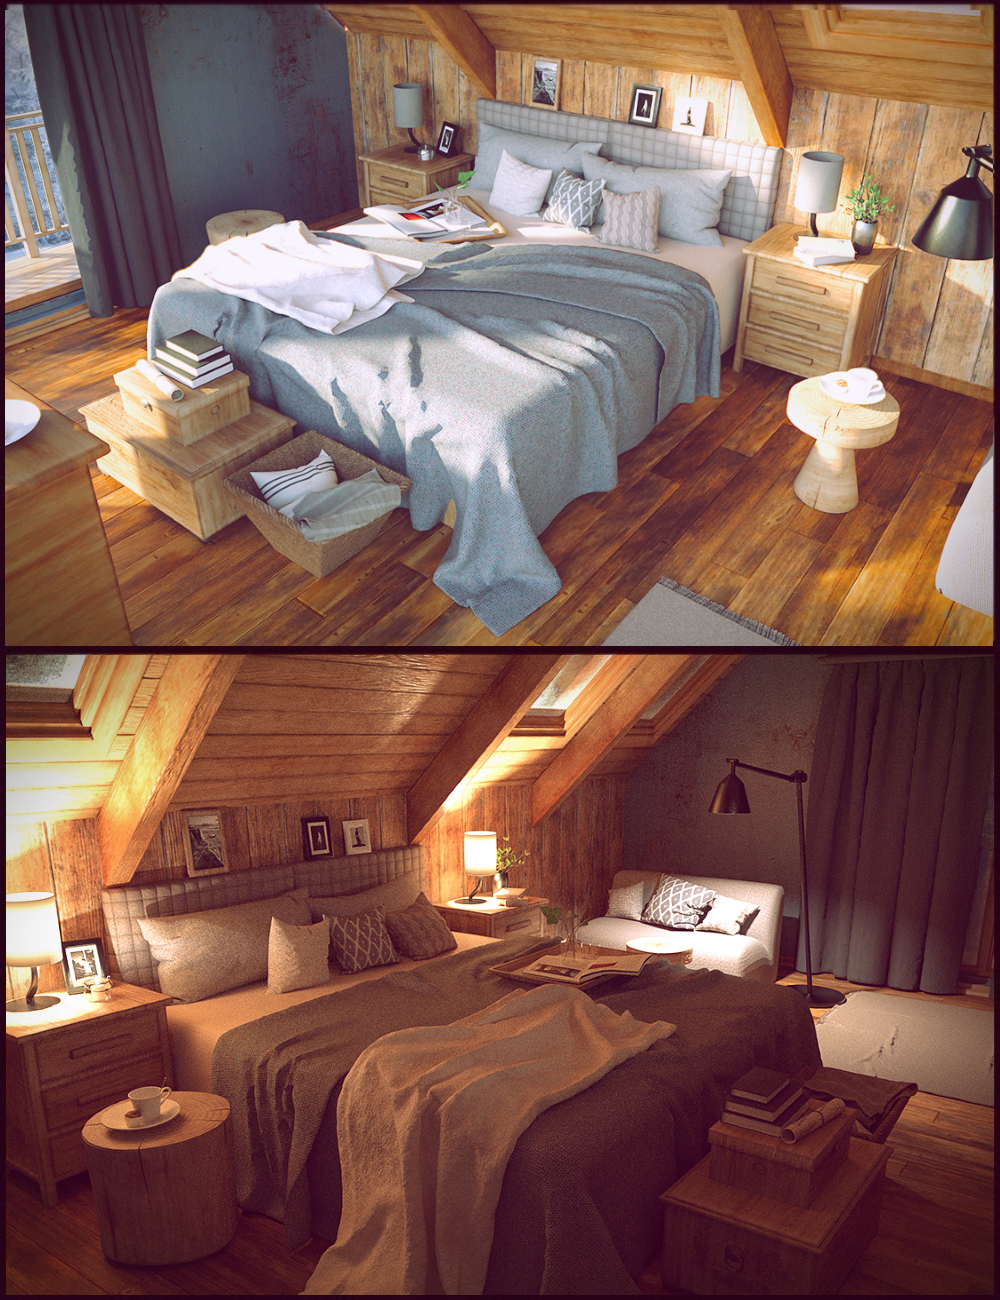 Winter Vacation Bedroom by: Polish, 3D Models by Daz 3D